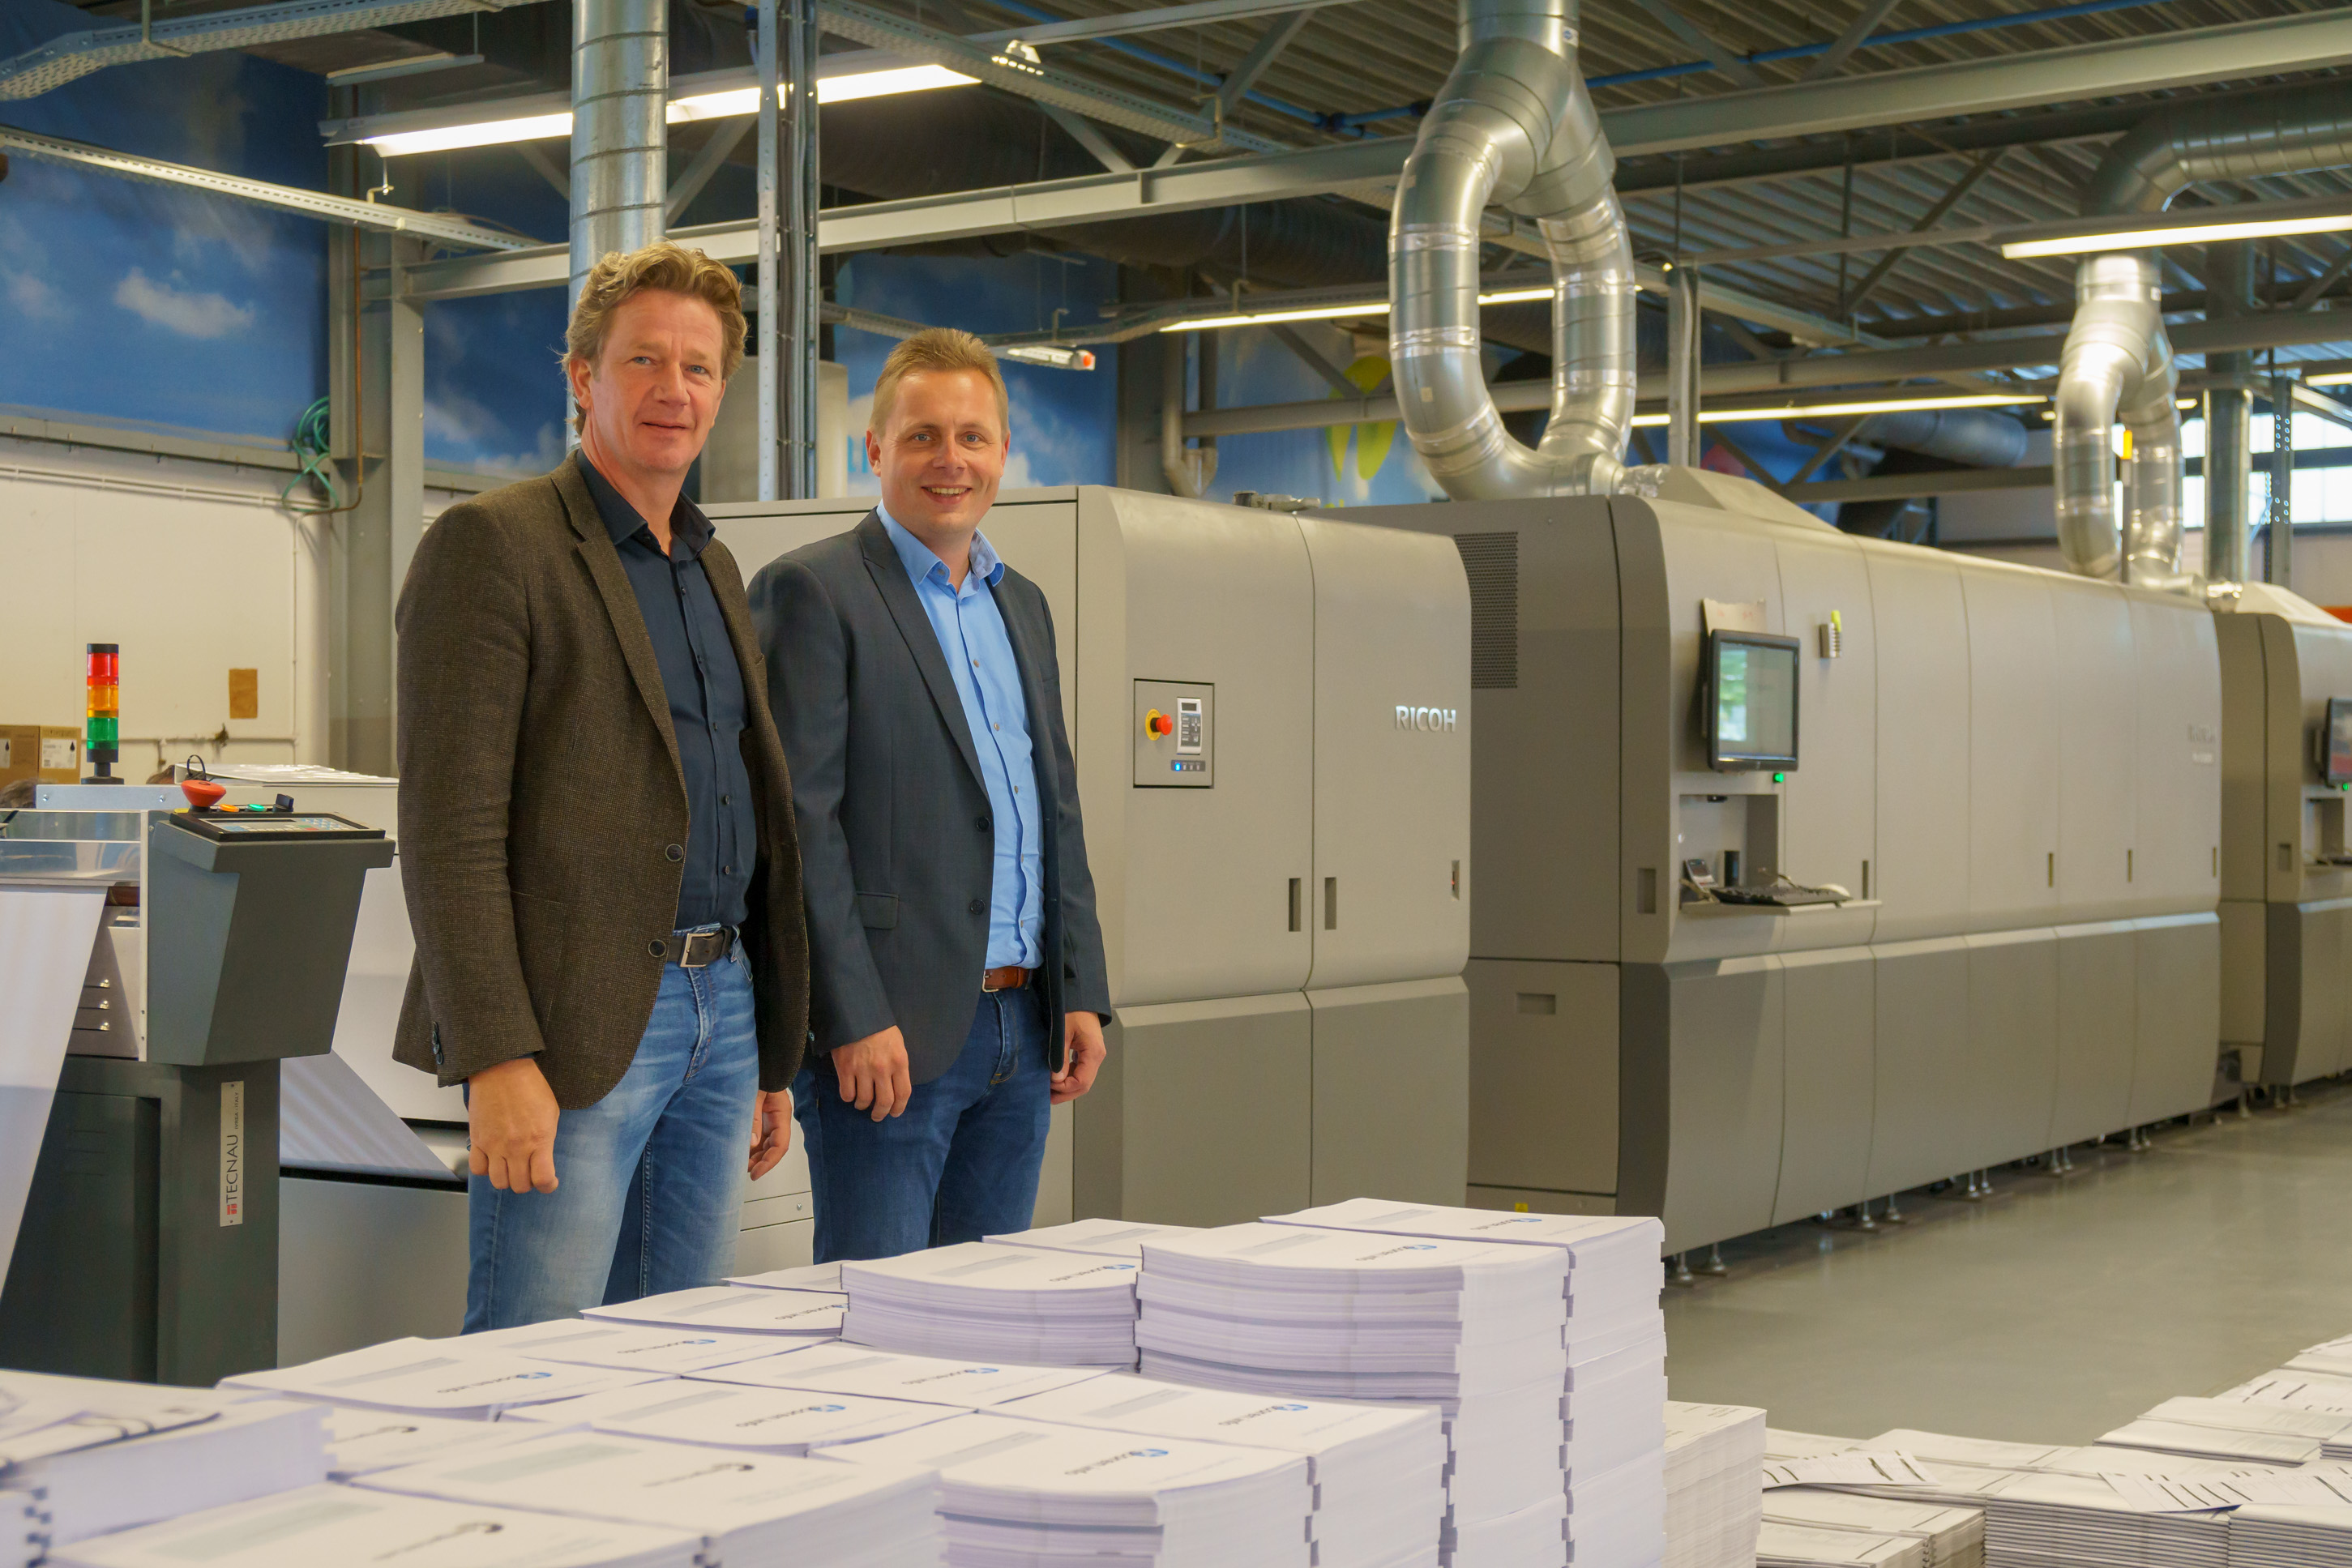 L-R Herman Verlind, director and co-owner of Zalsman and Frans Selles, director of Zalsman Innovative Print